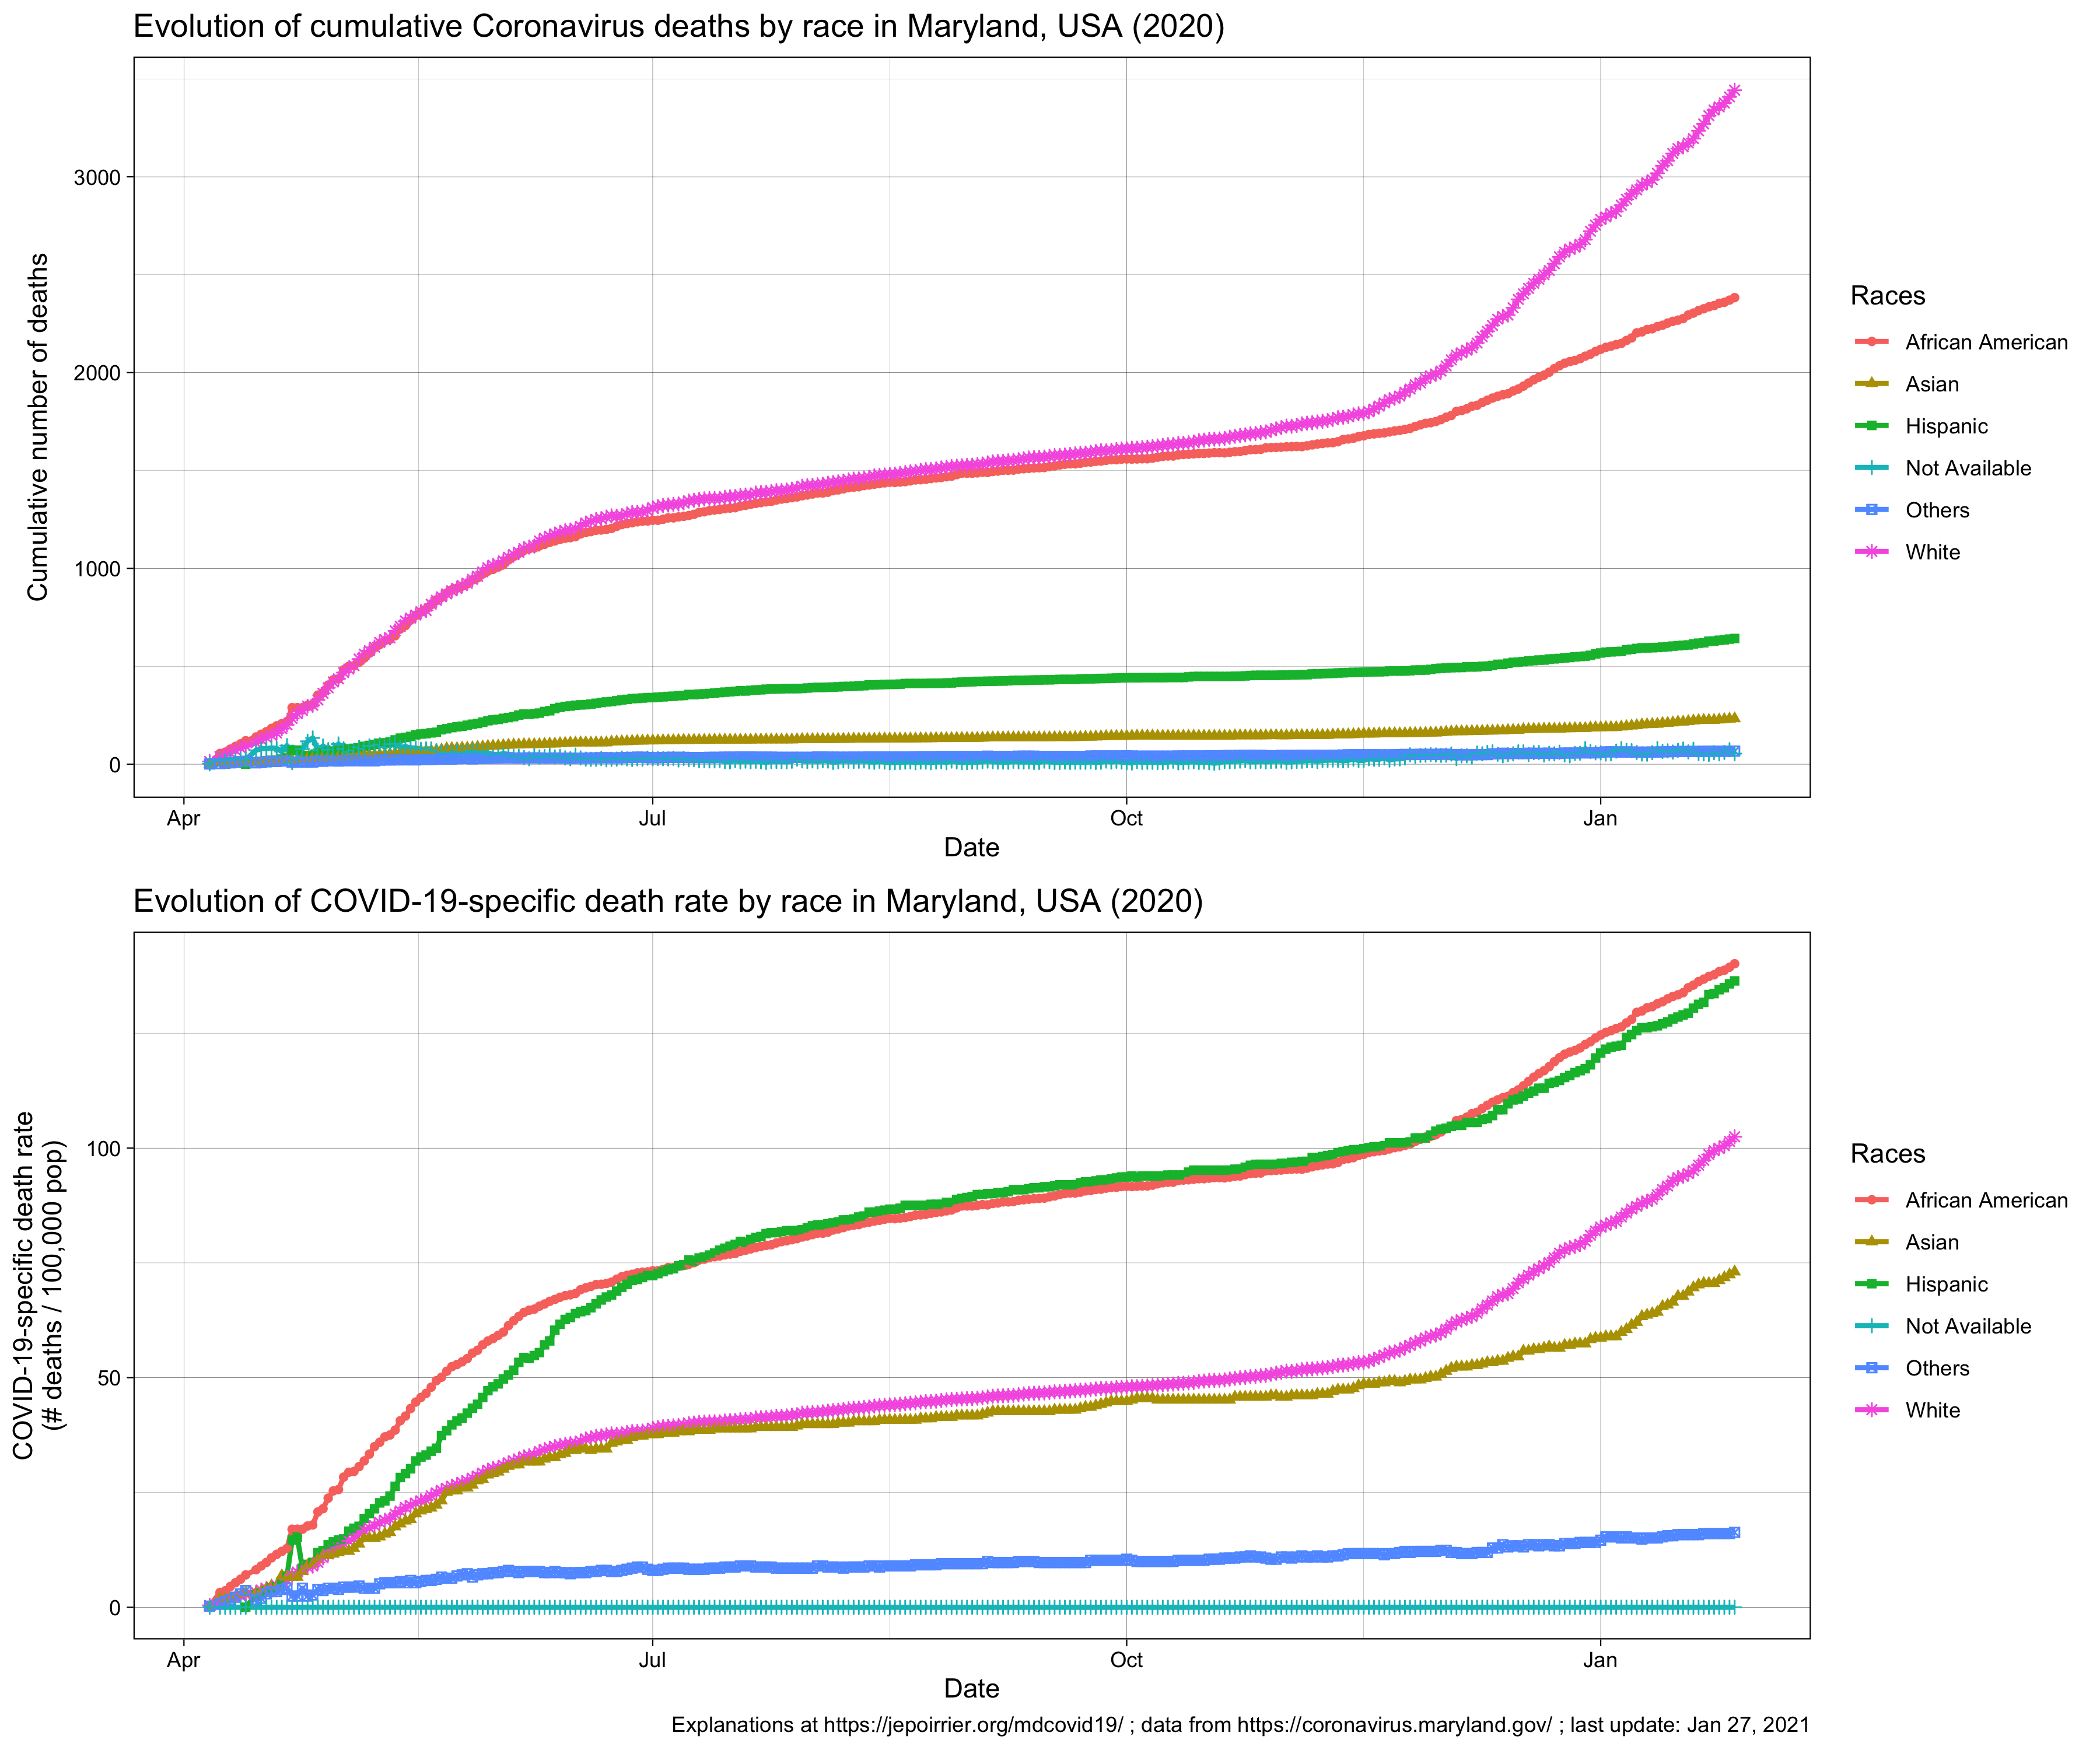 Trend in Coronavirus deaths by race in Maryland, MD, USA, 2020